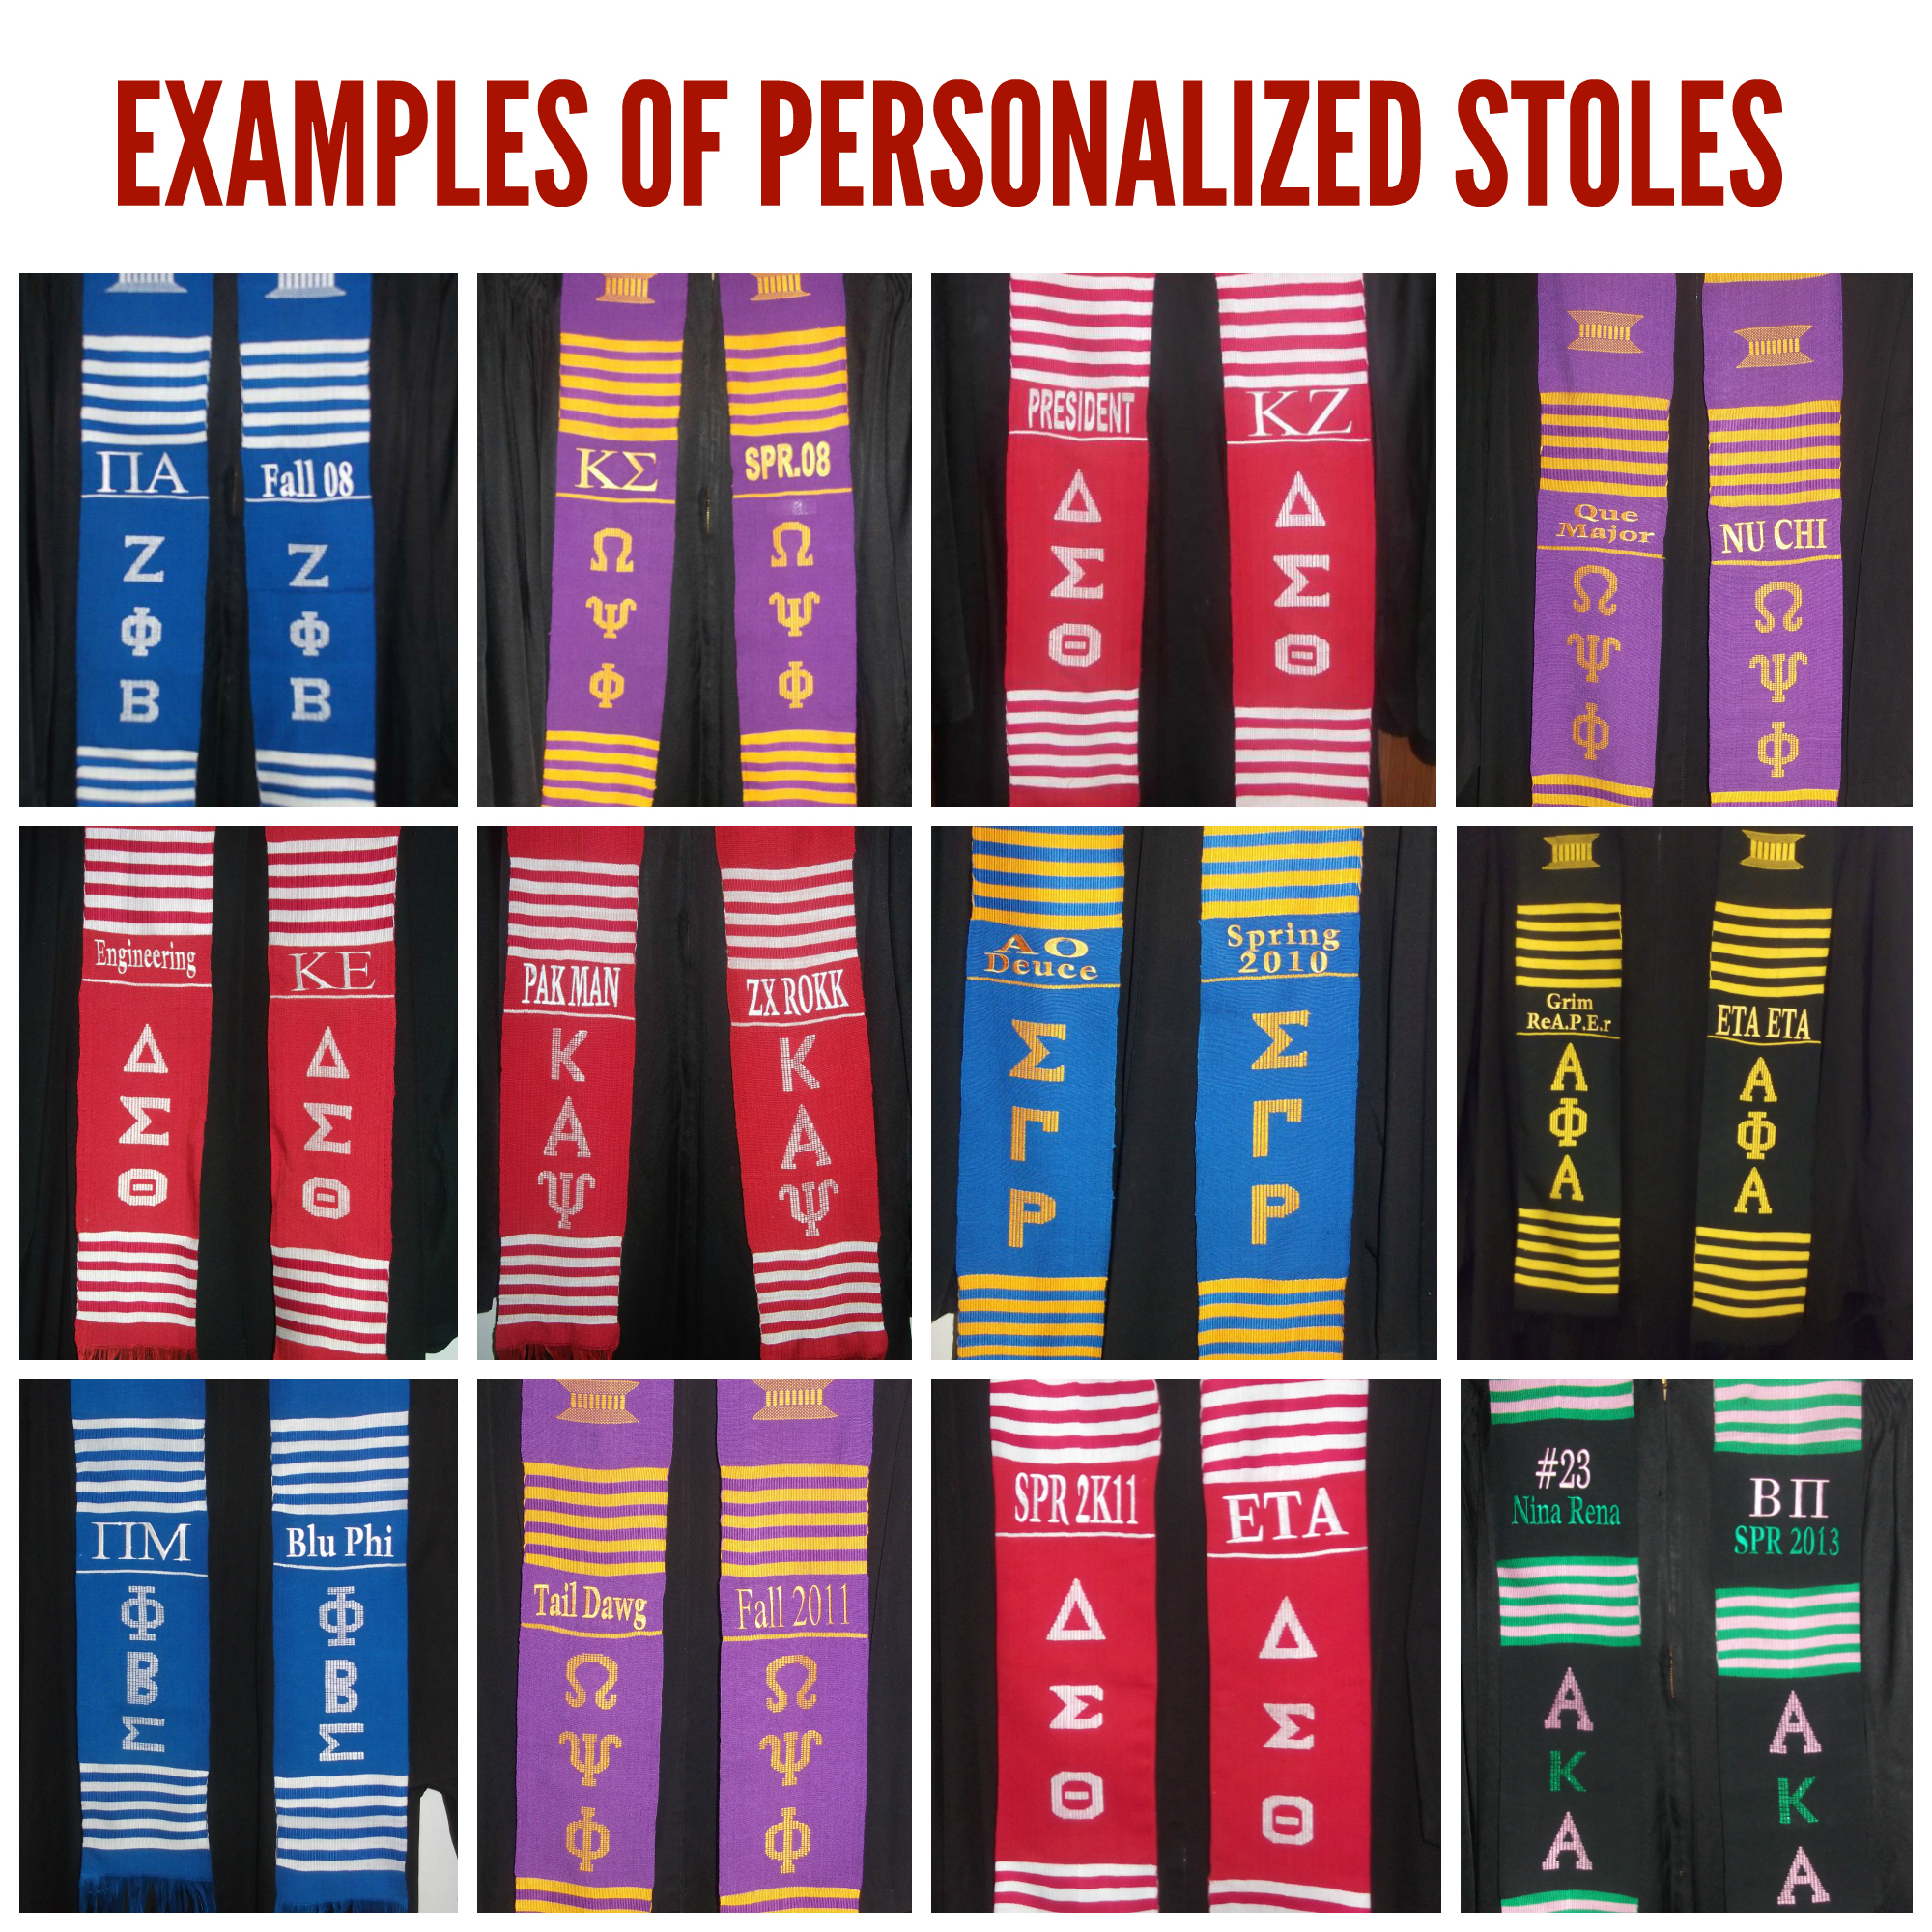 personalized-stoles.jpg